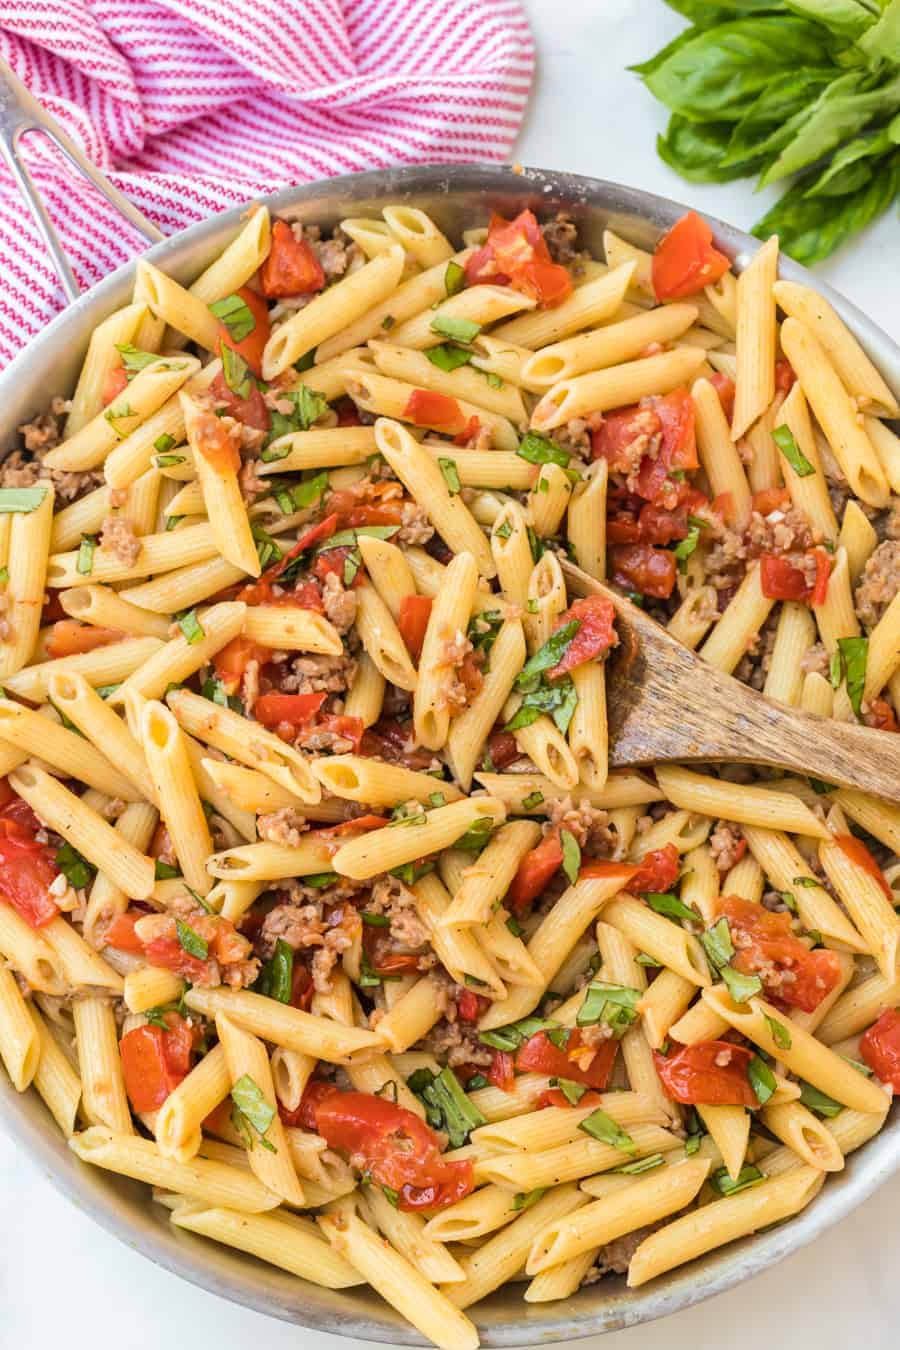 Image of Roasted Tomato & Sausage Pasta in a Pot